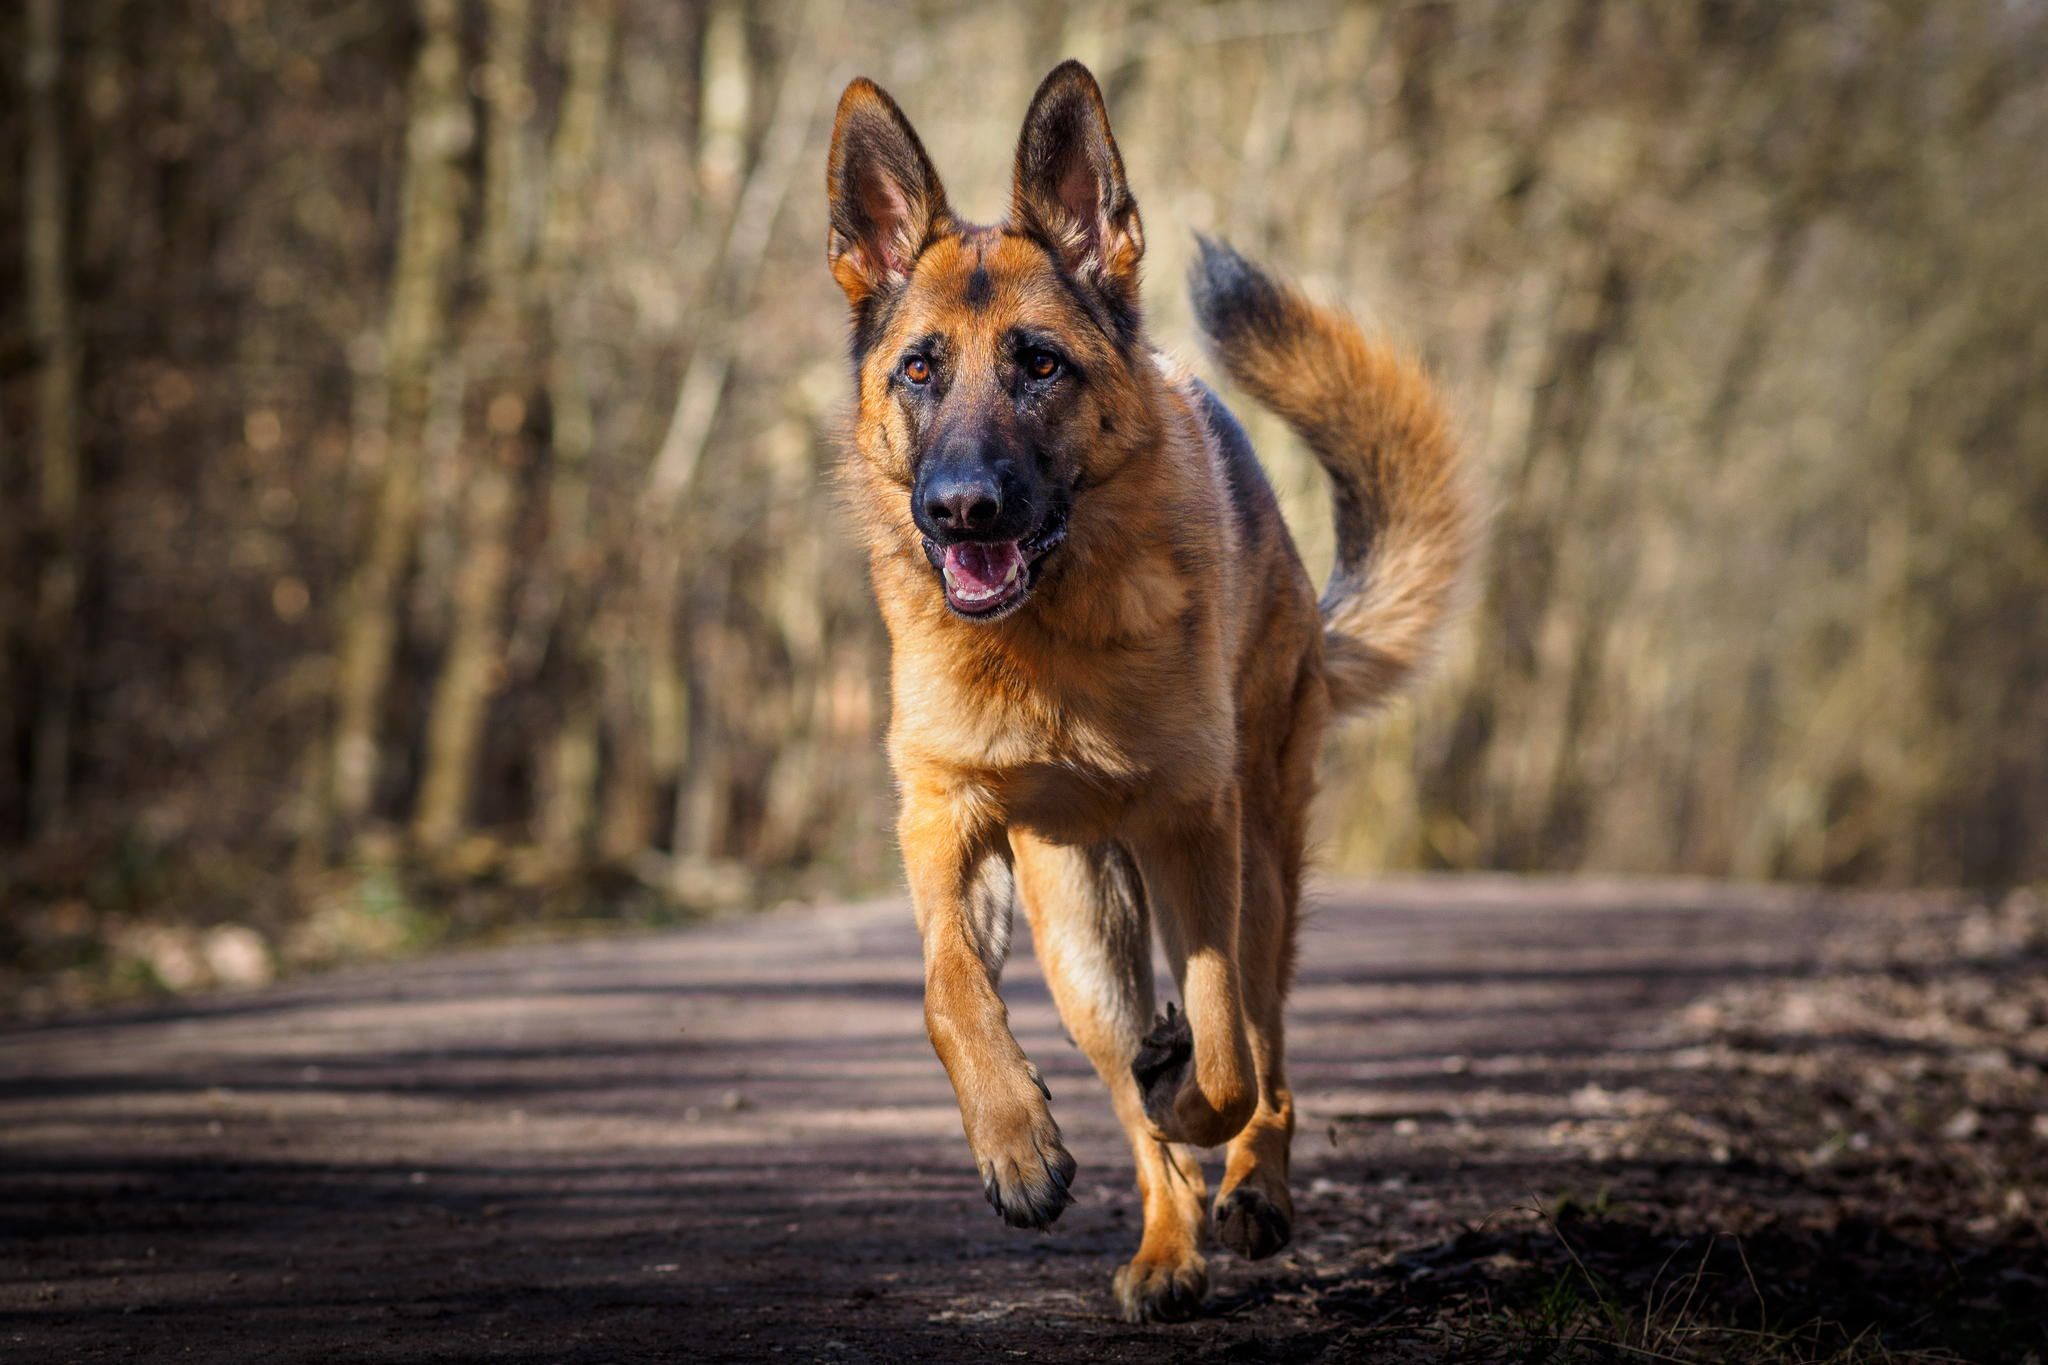 Cute Dogs And Puppies Wallpaper For Mobile German Shepherd Hd Wallpaper Background Image